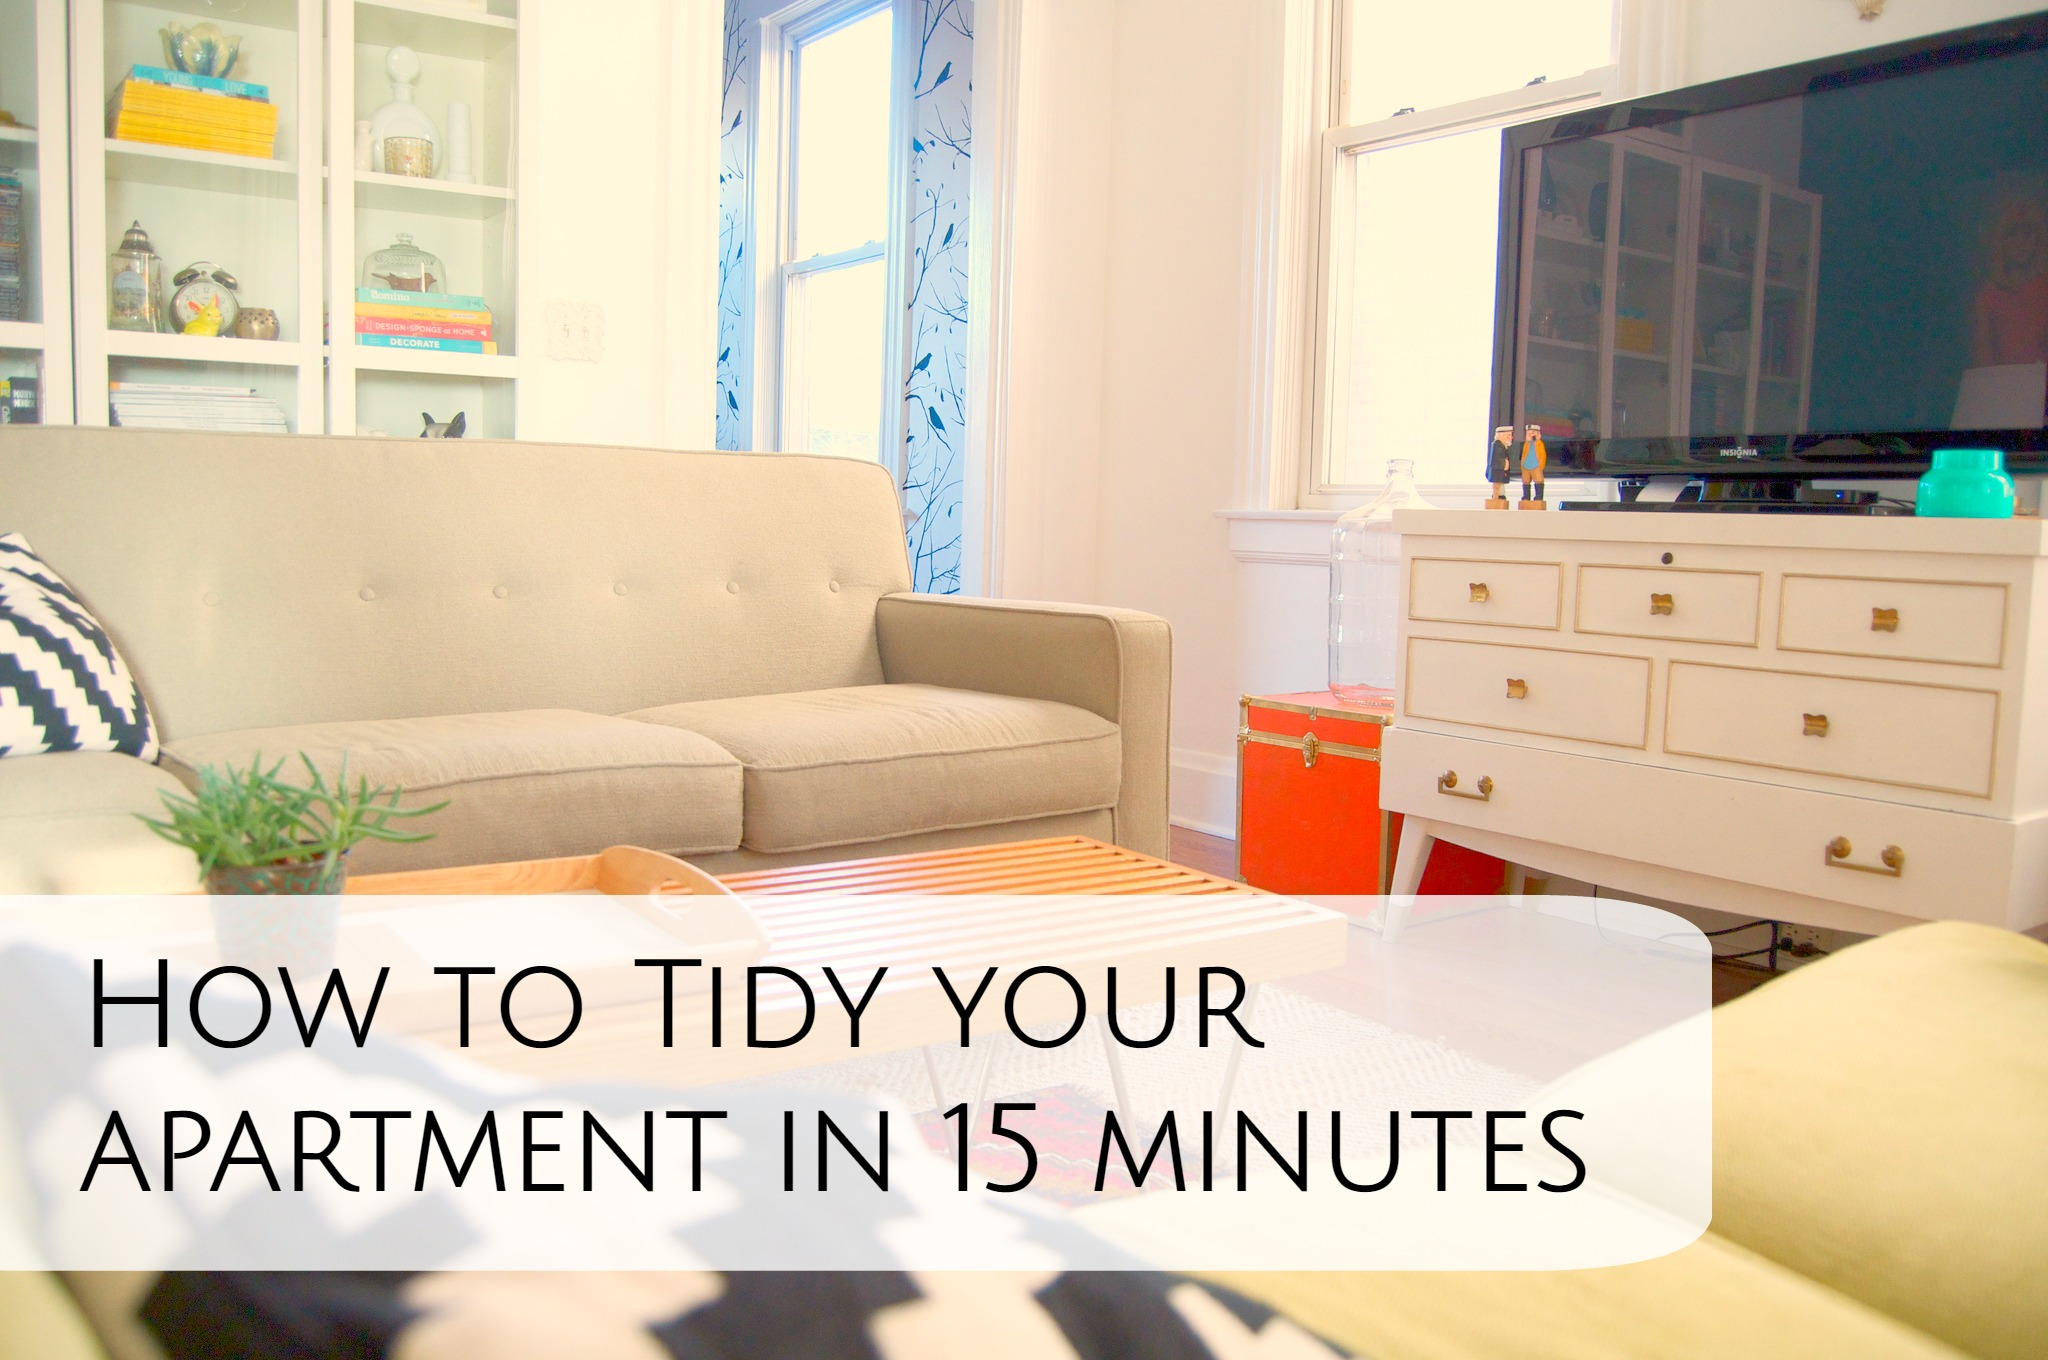 How to tidy your apartment in 15 minutes